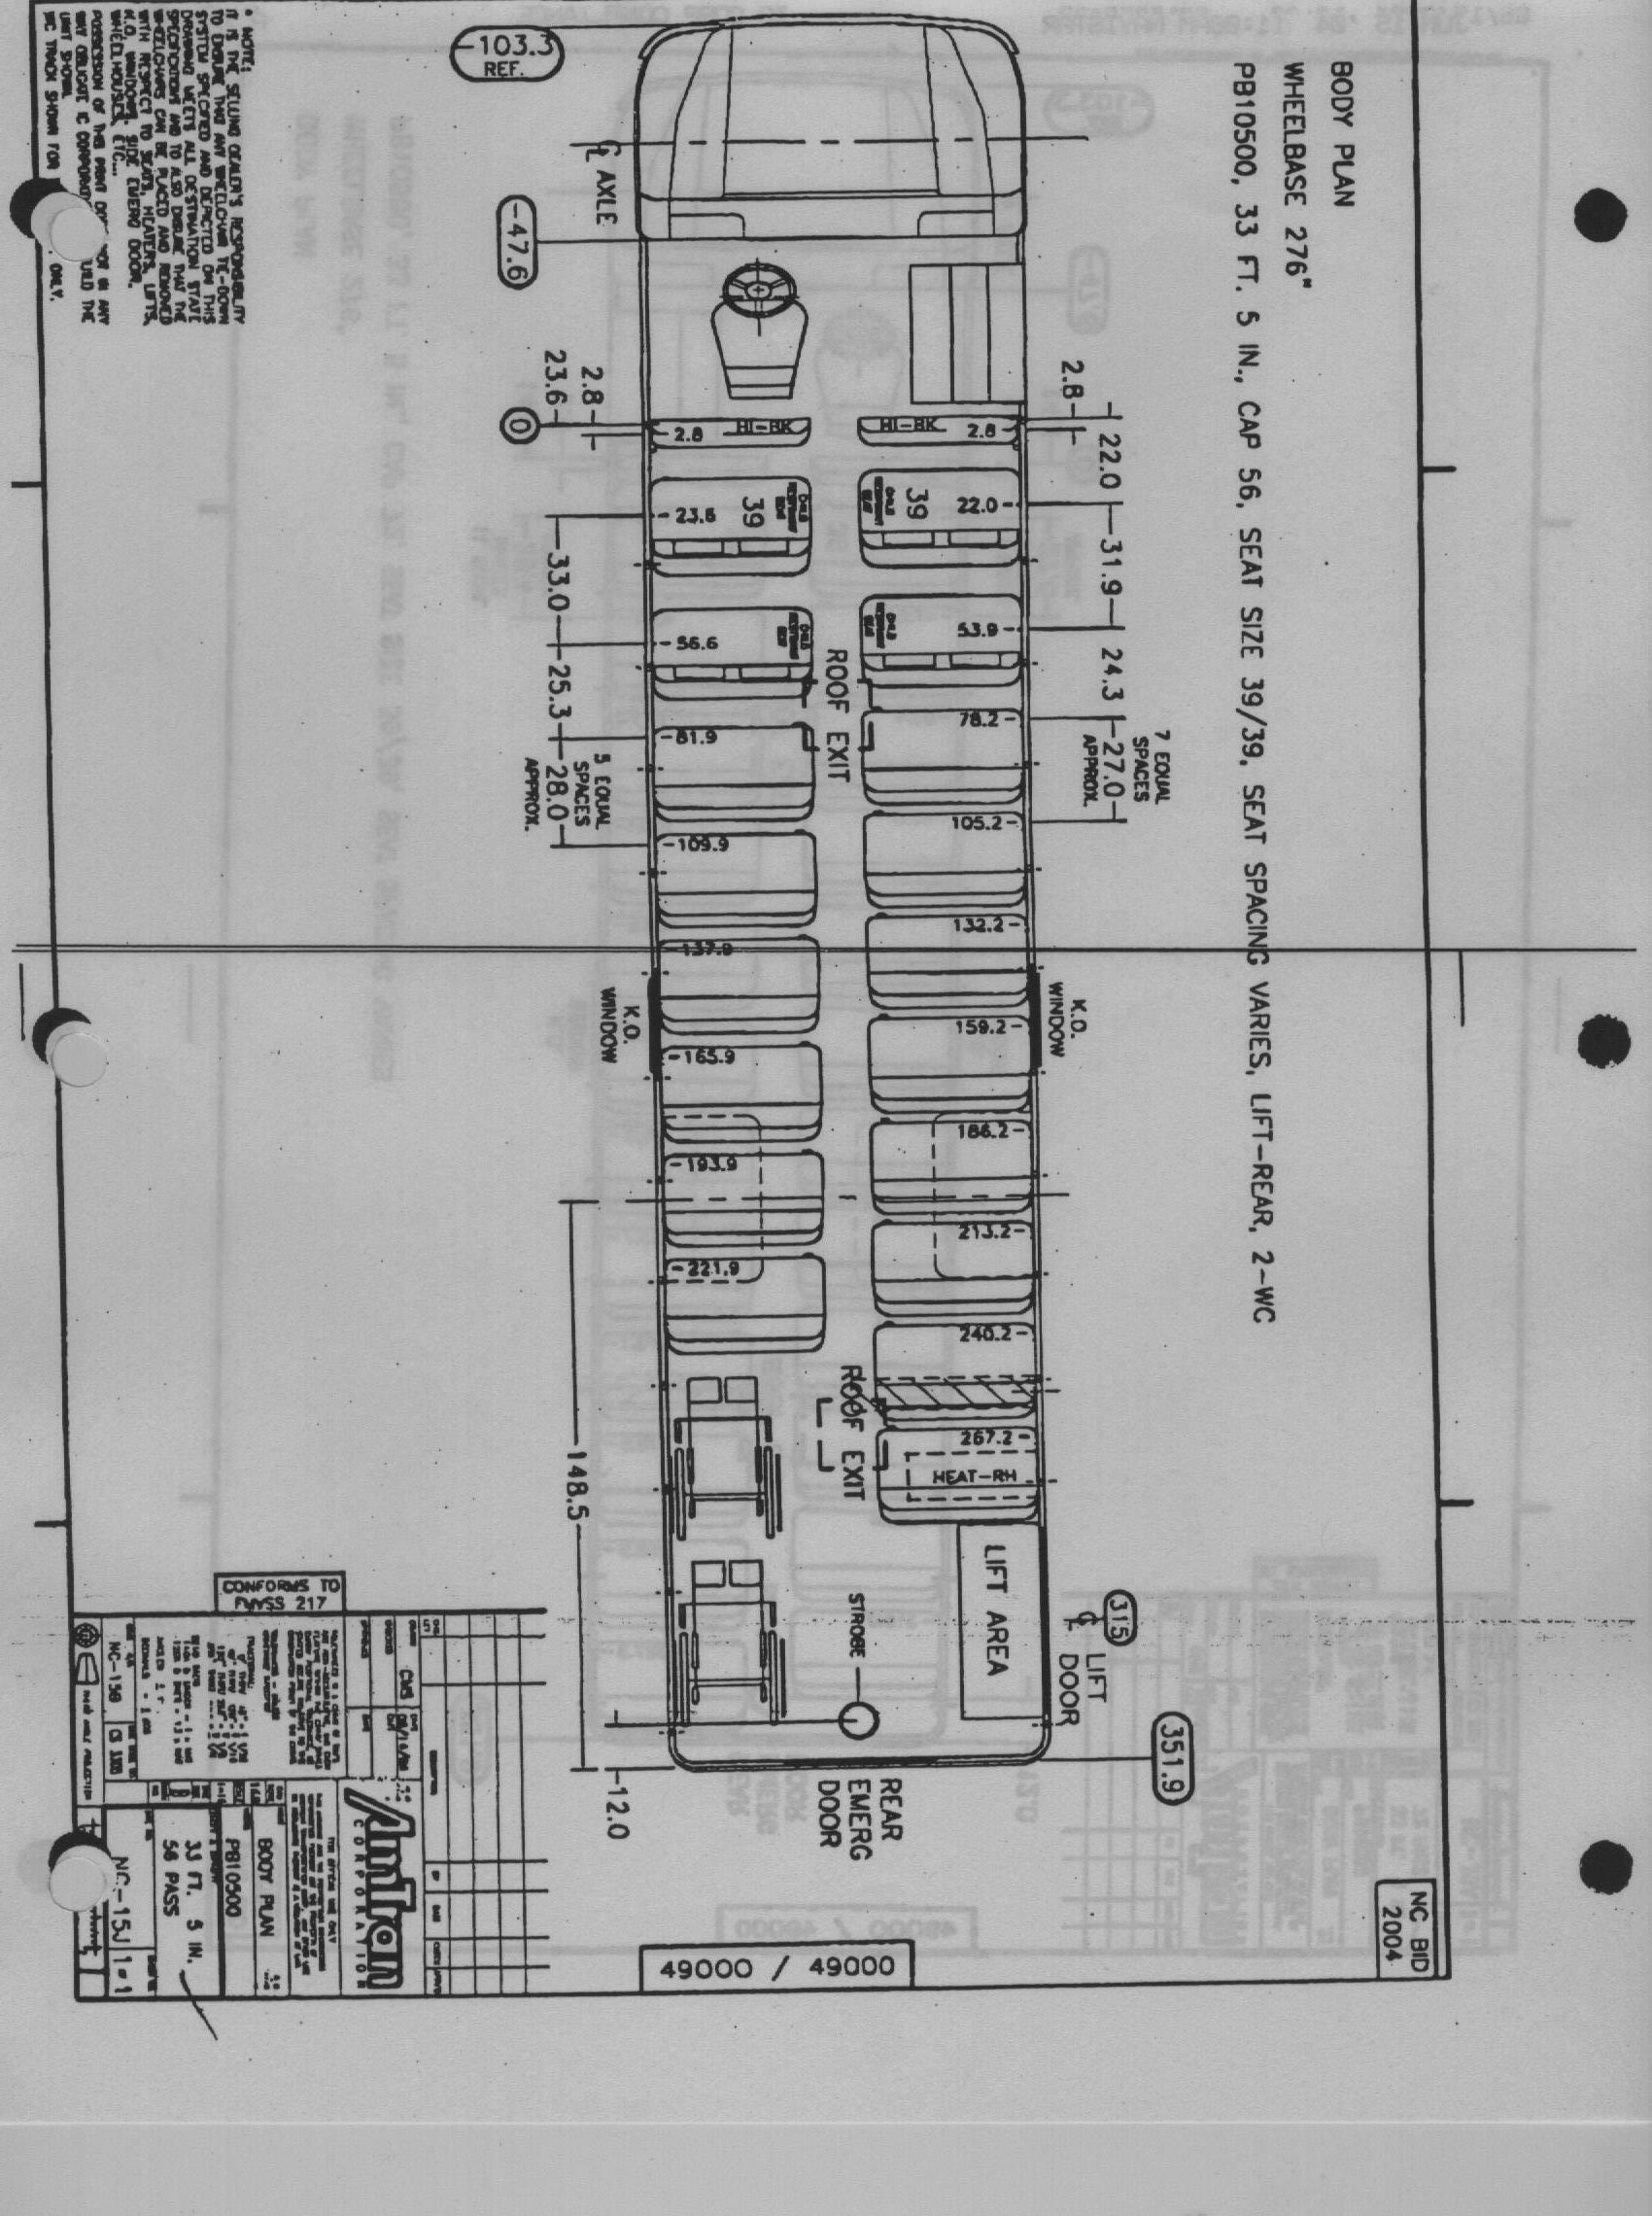 72 Lift school bus models wiring diagram for thomas built school bus at panicattacktreatment.co